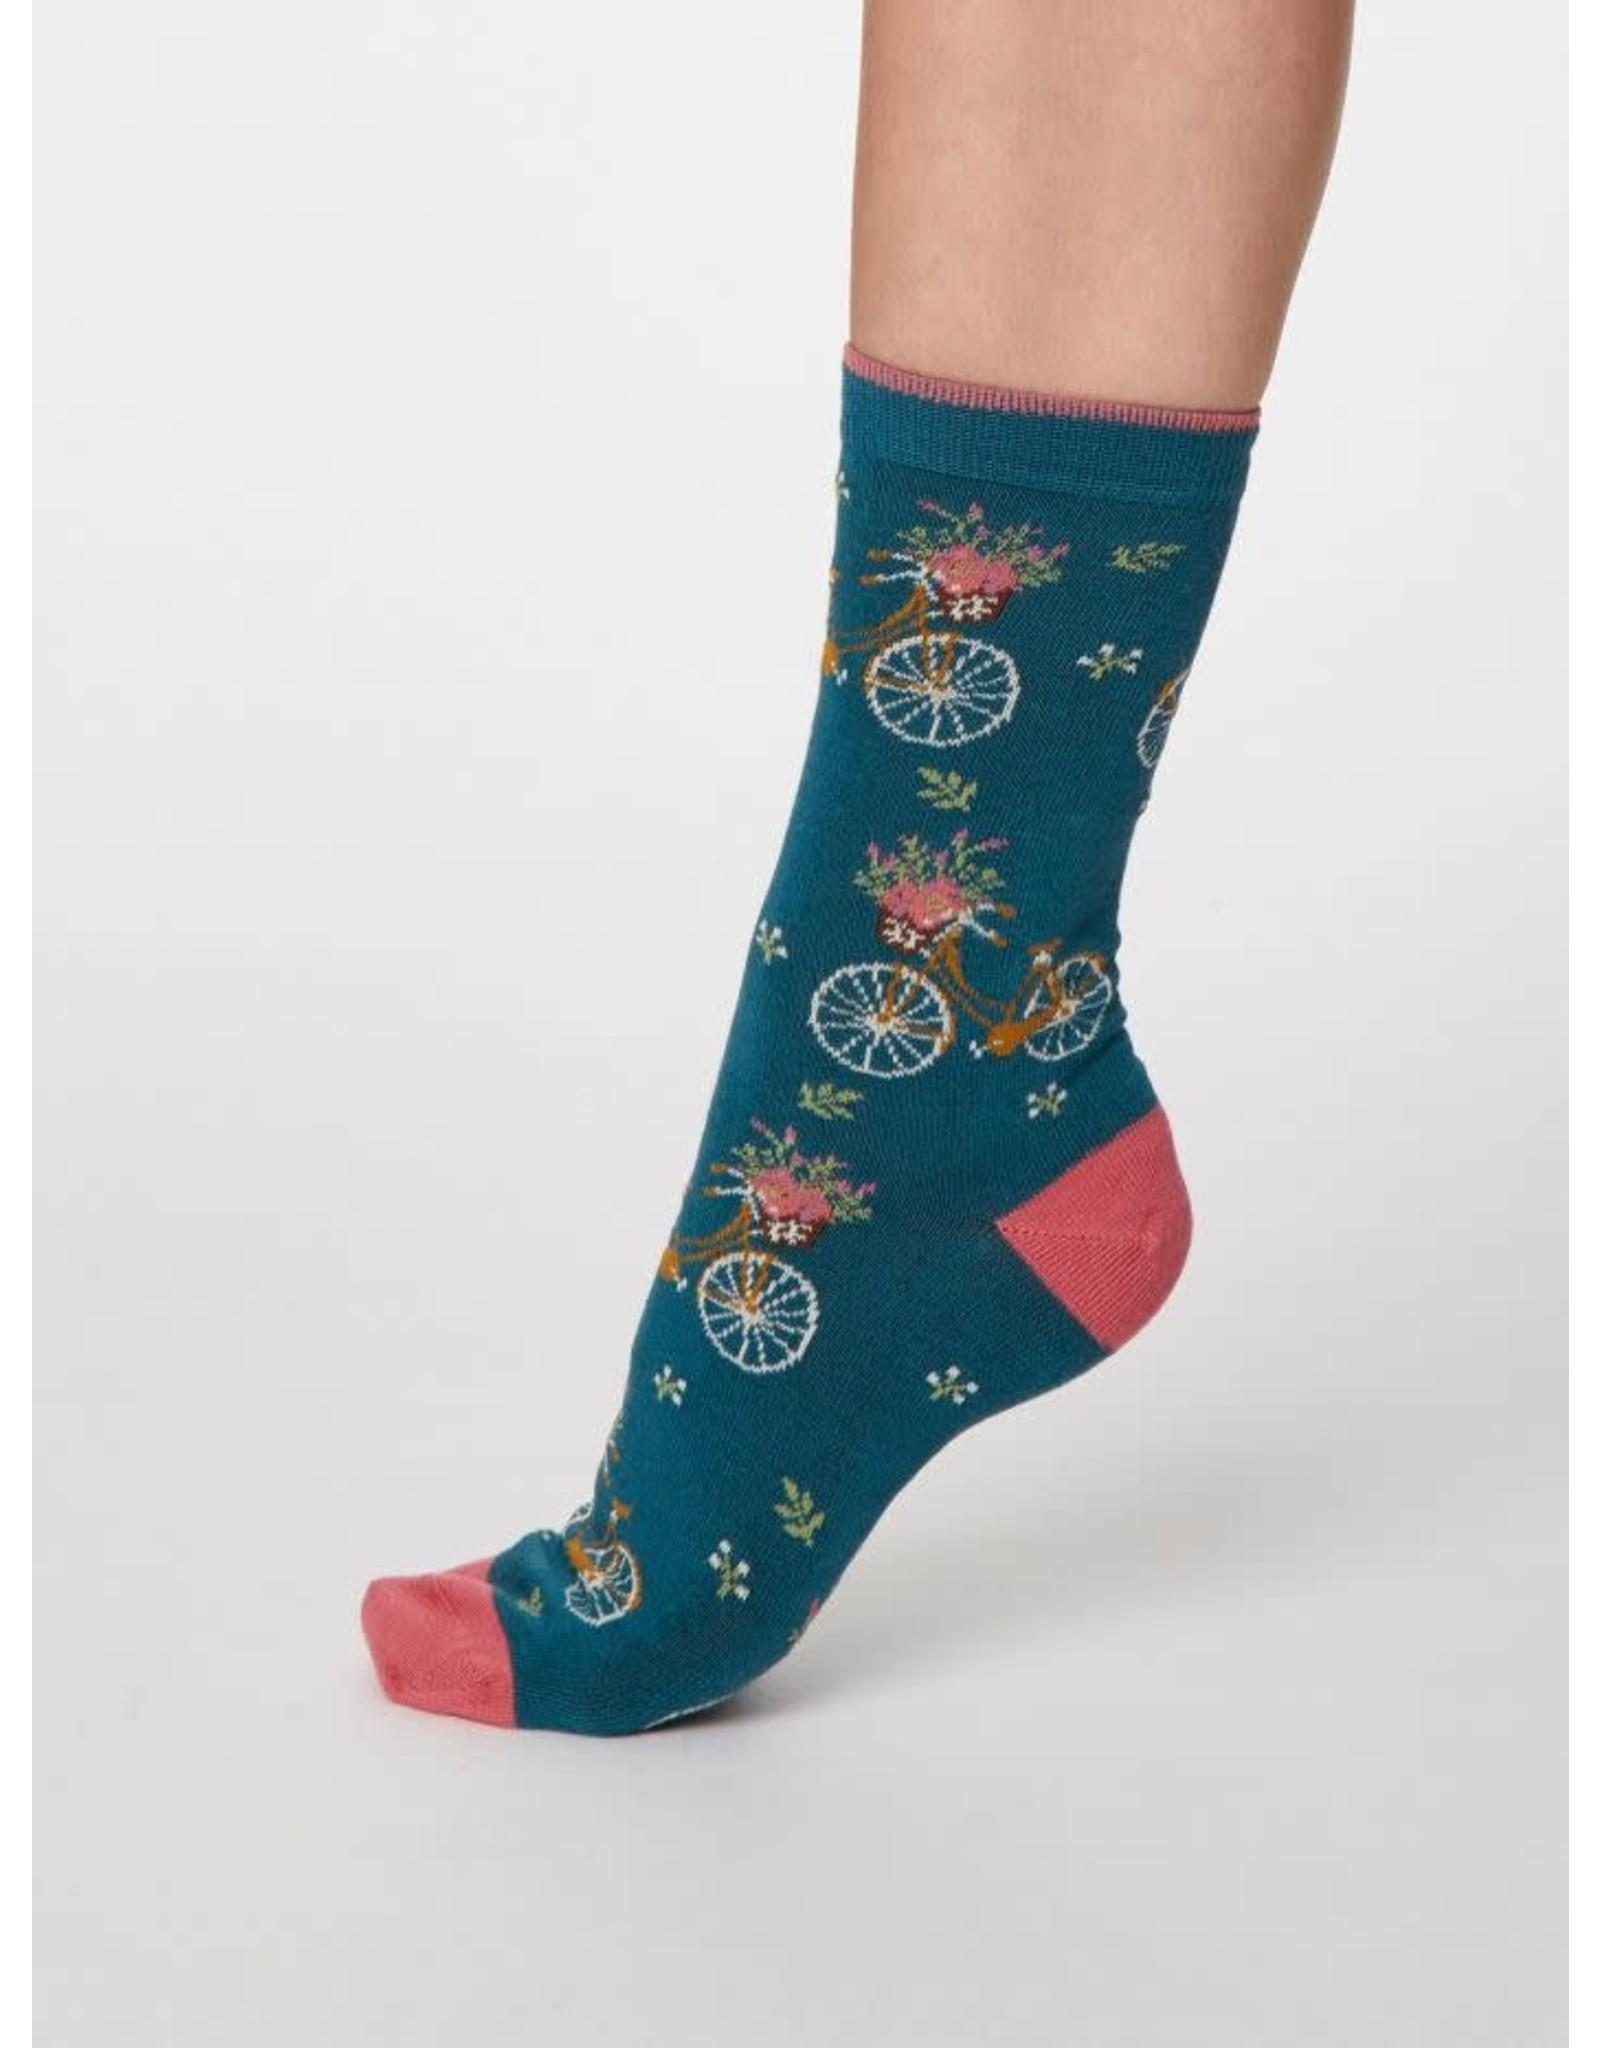 Thought Thought Bicicletta Socks